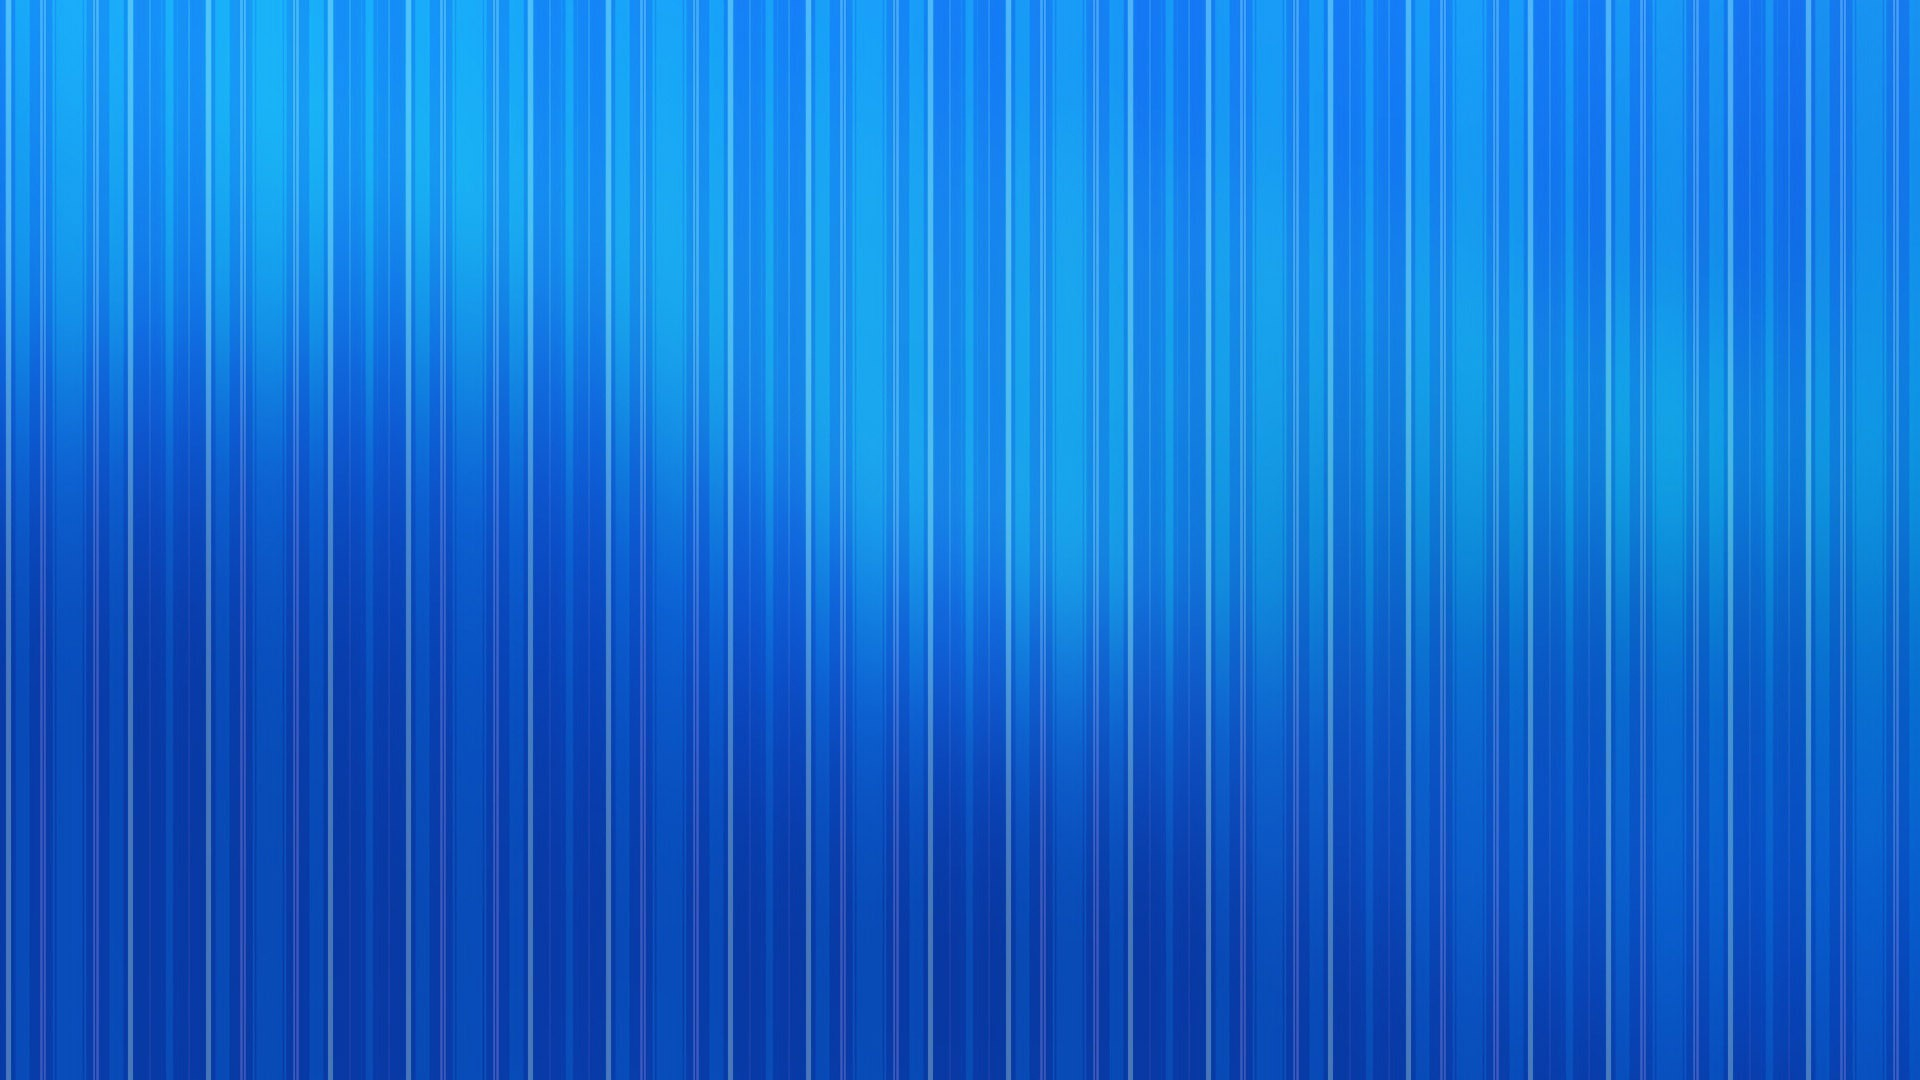 Free Blue Stripes Wallpaper